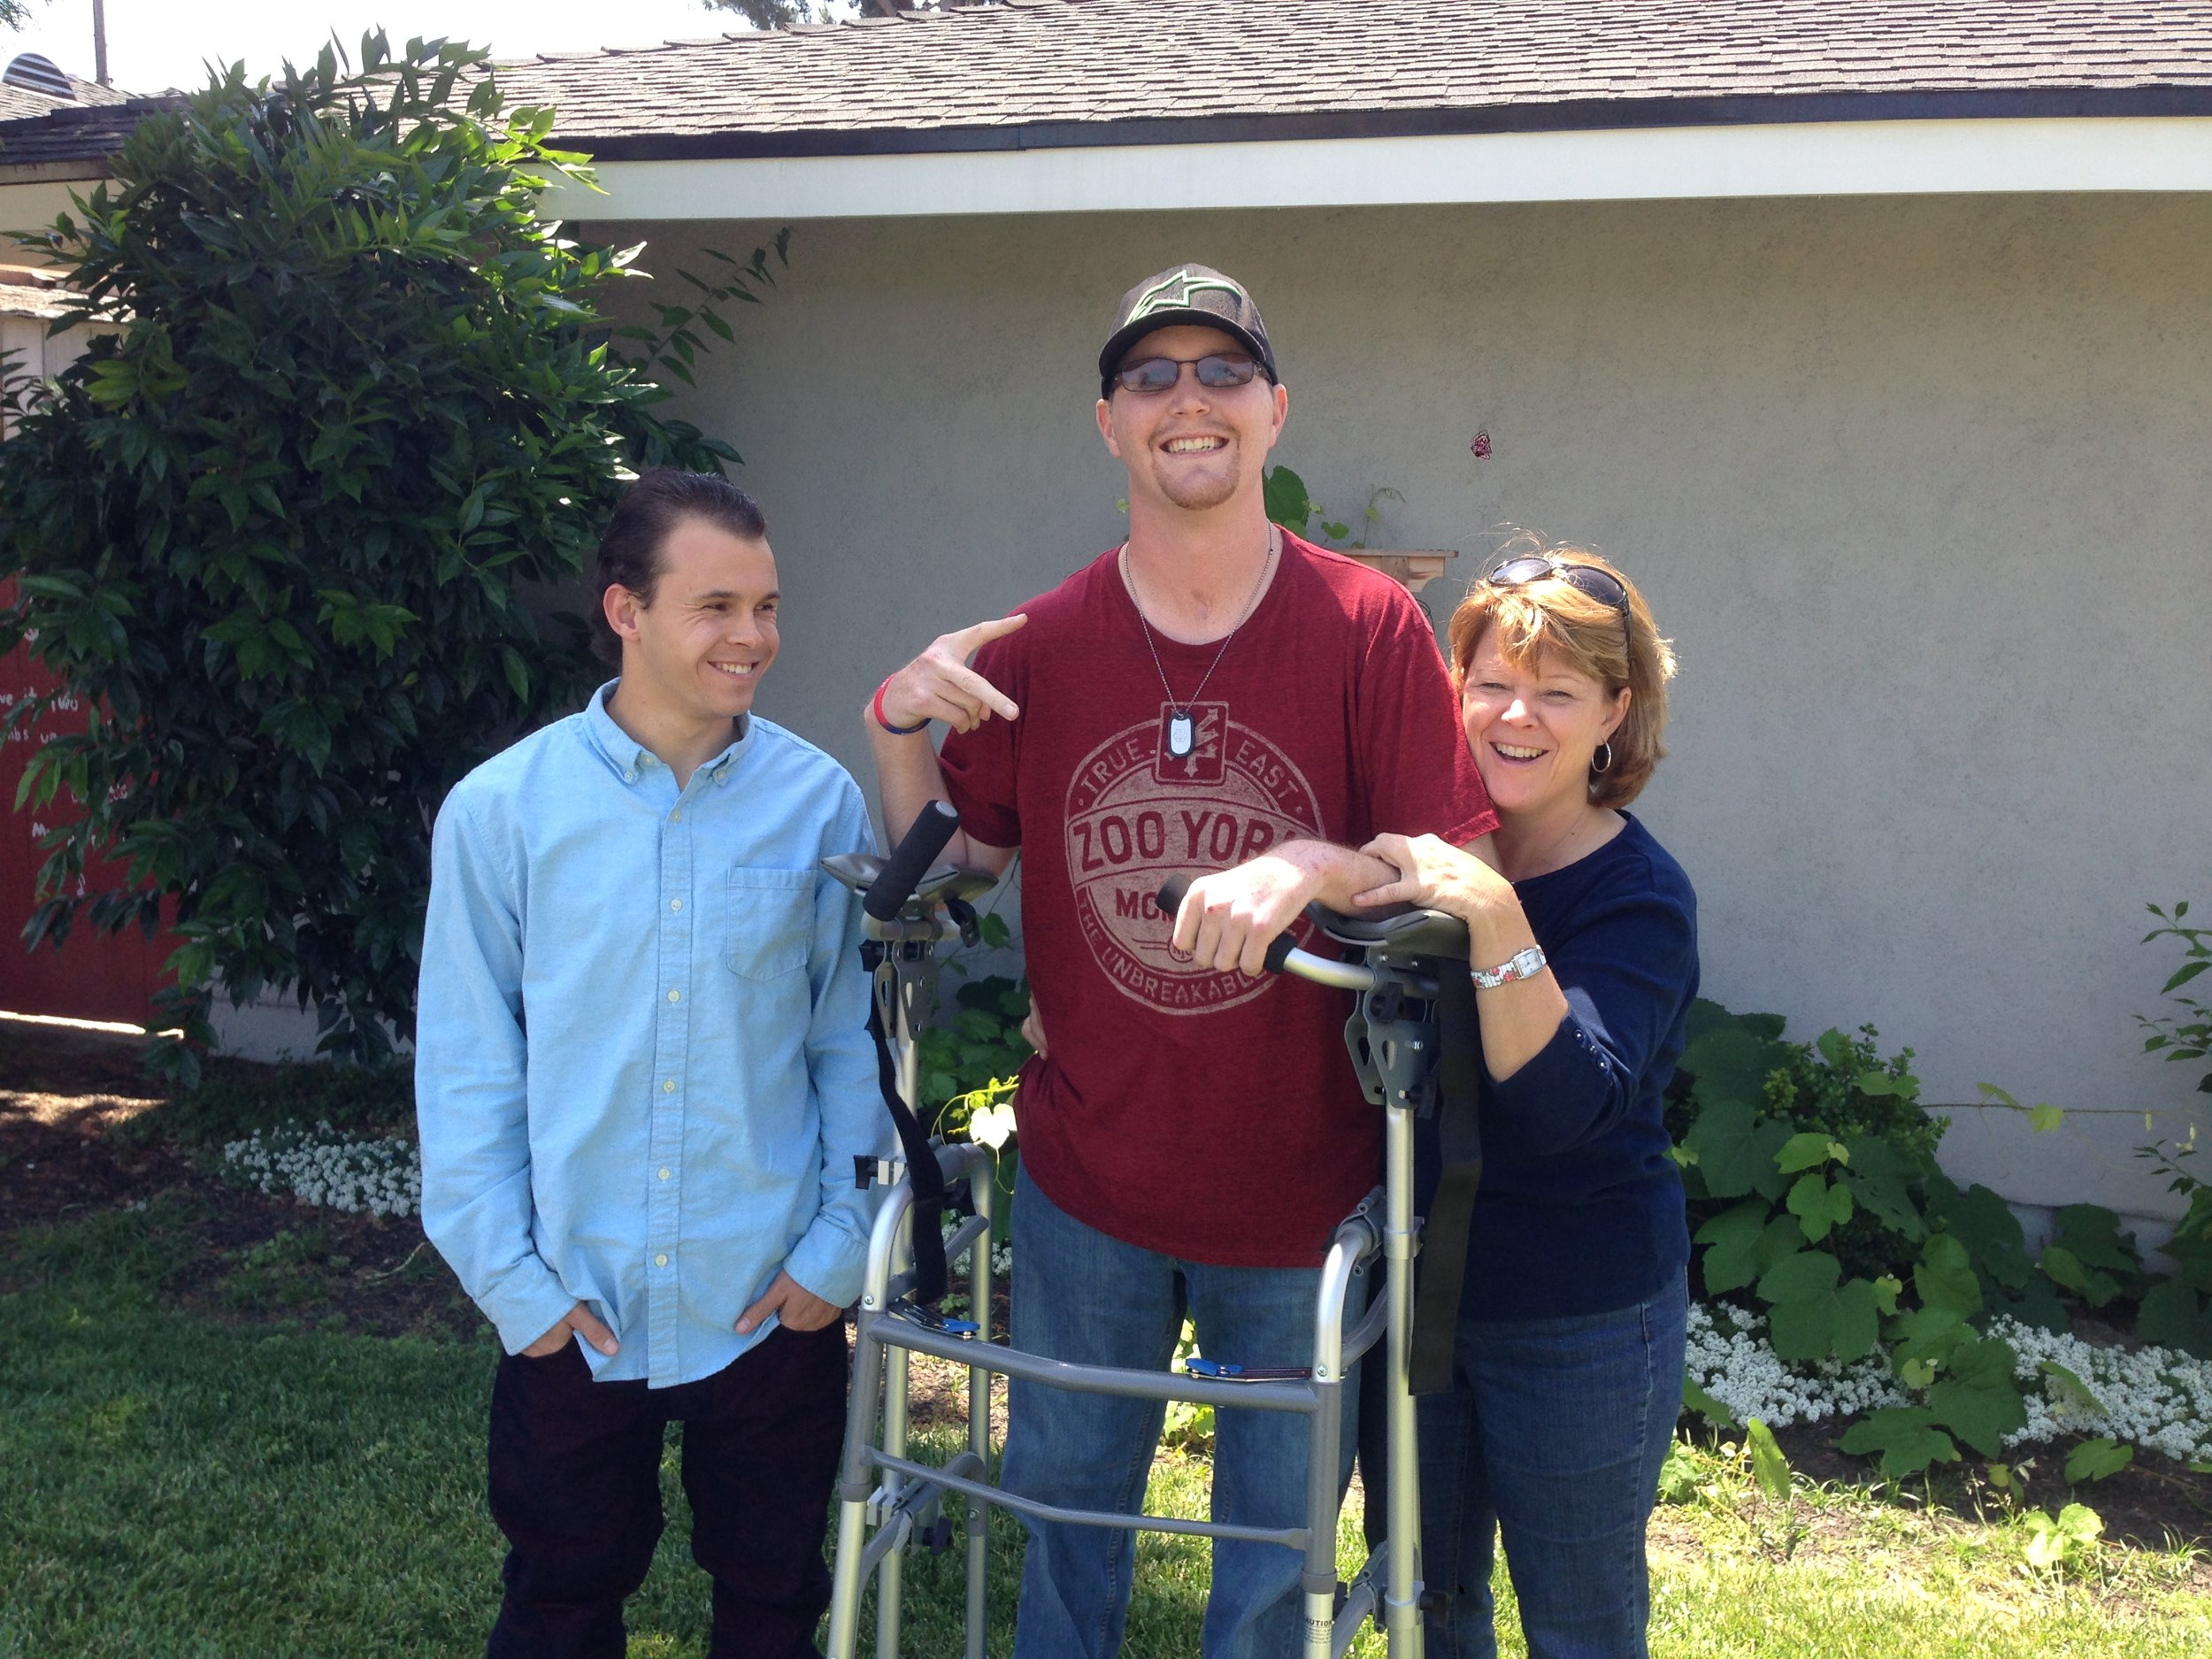 Laura Taylor with her sons Jeremy and Nik. Photo provided by Laura Taylor